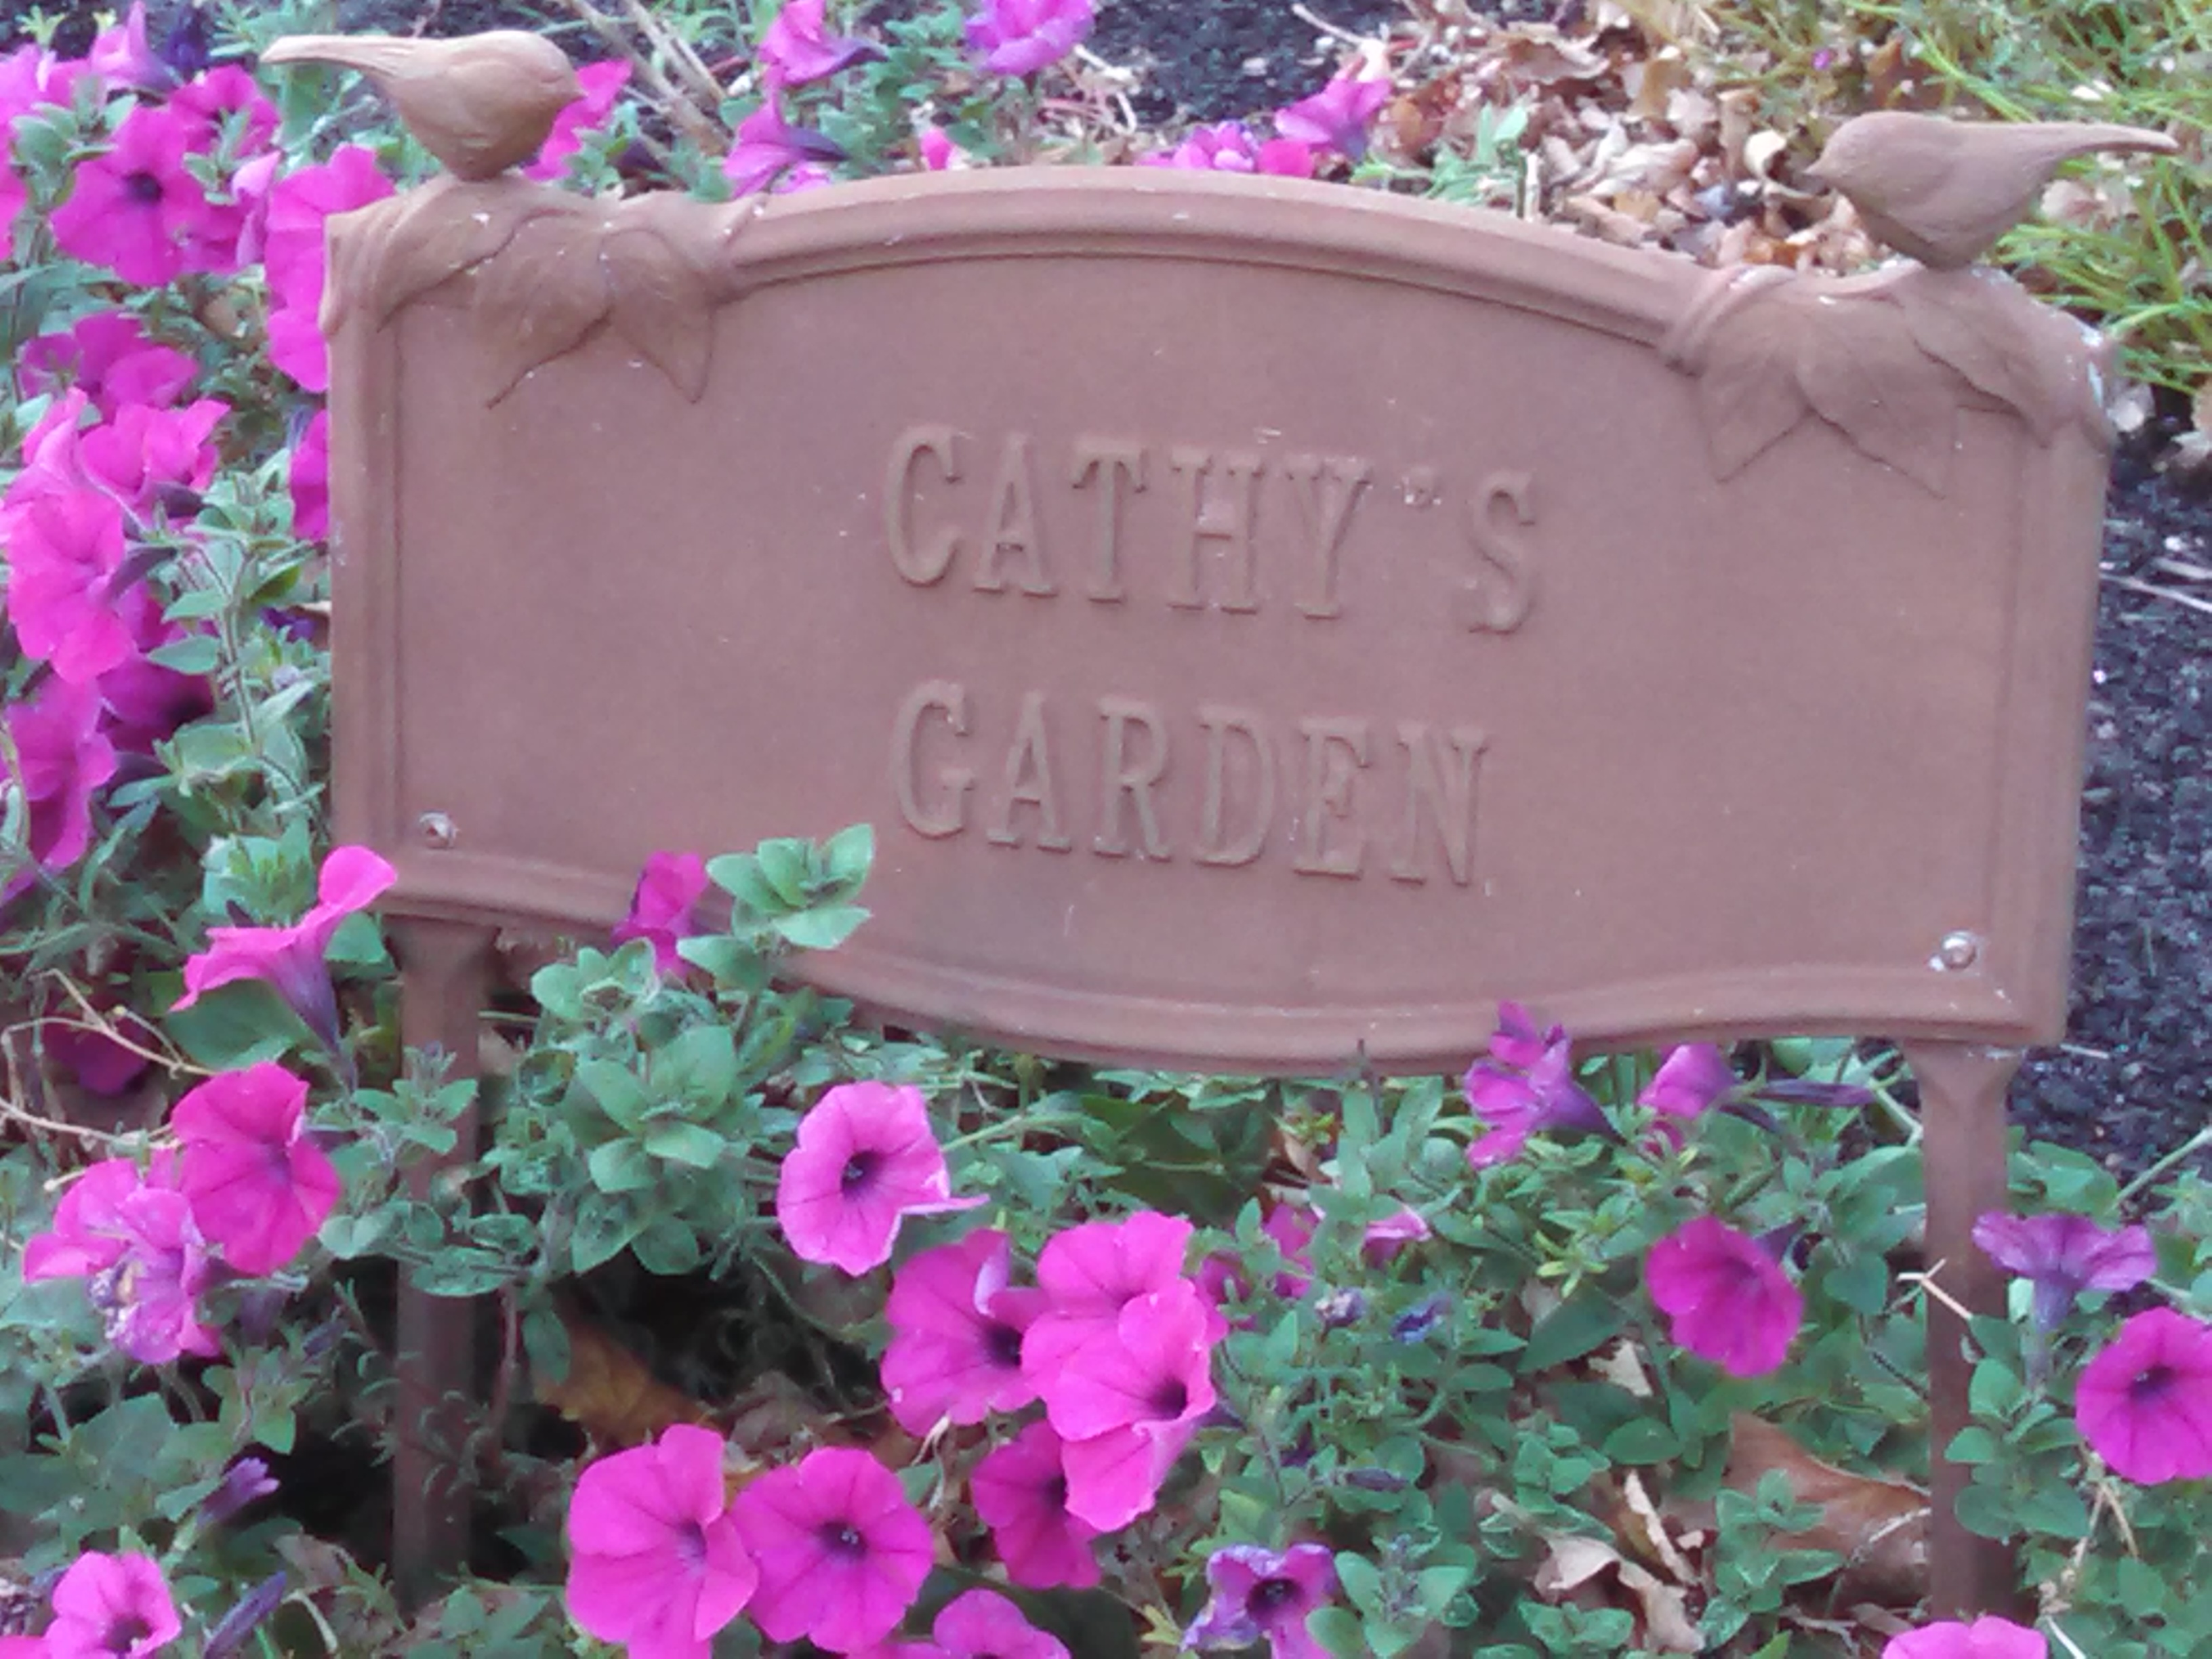 cathys garden sign with flowers